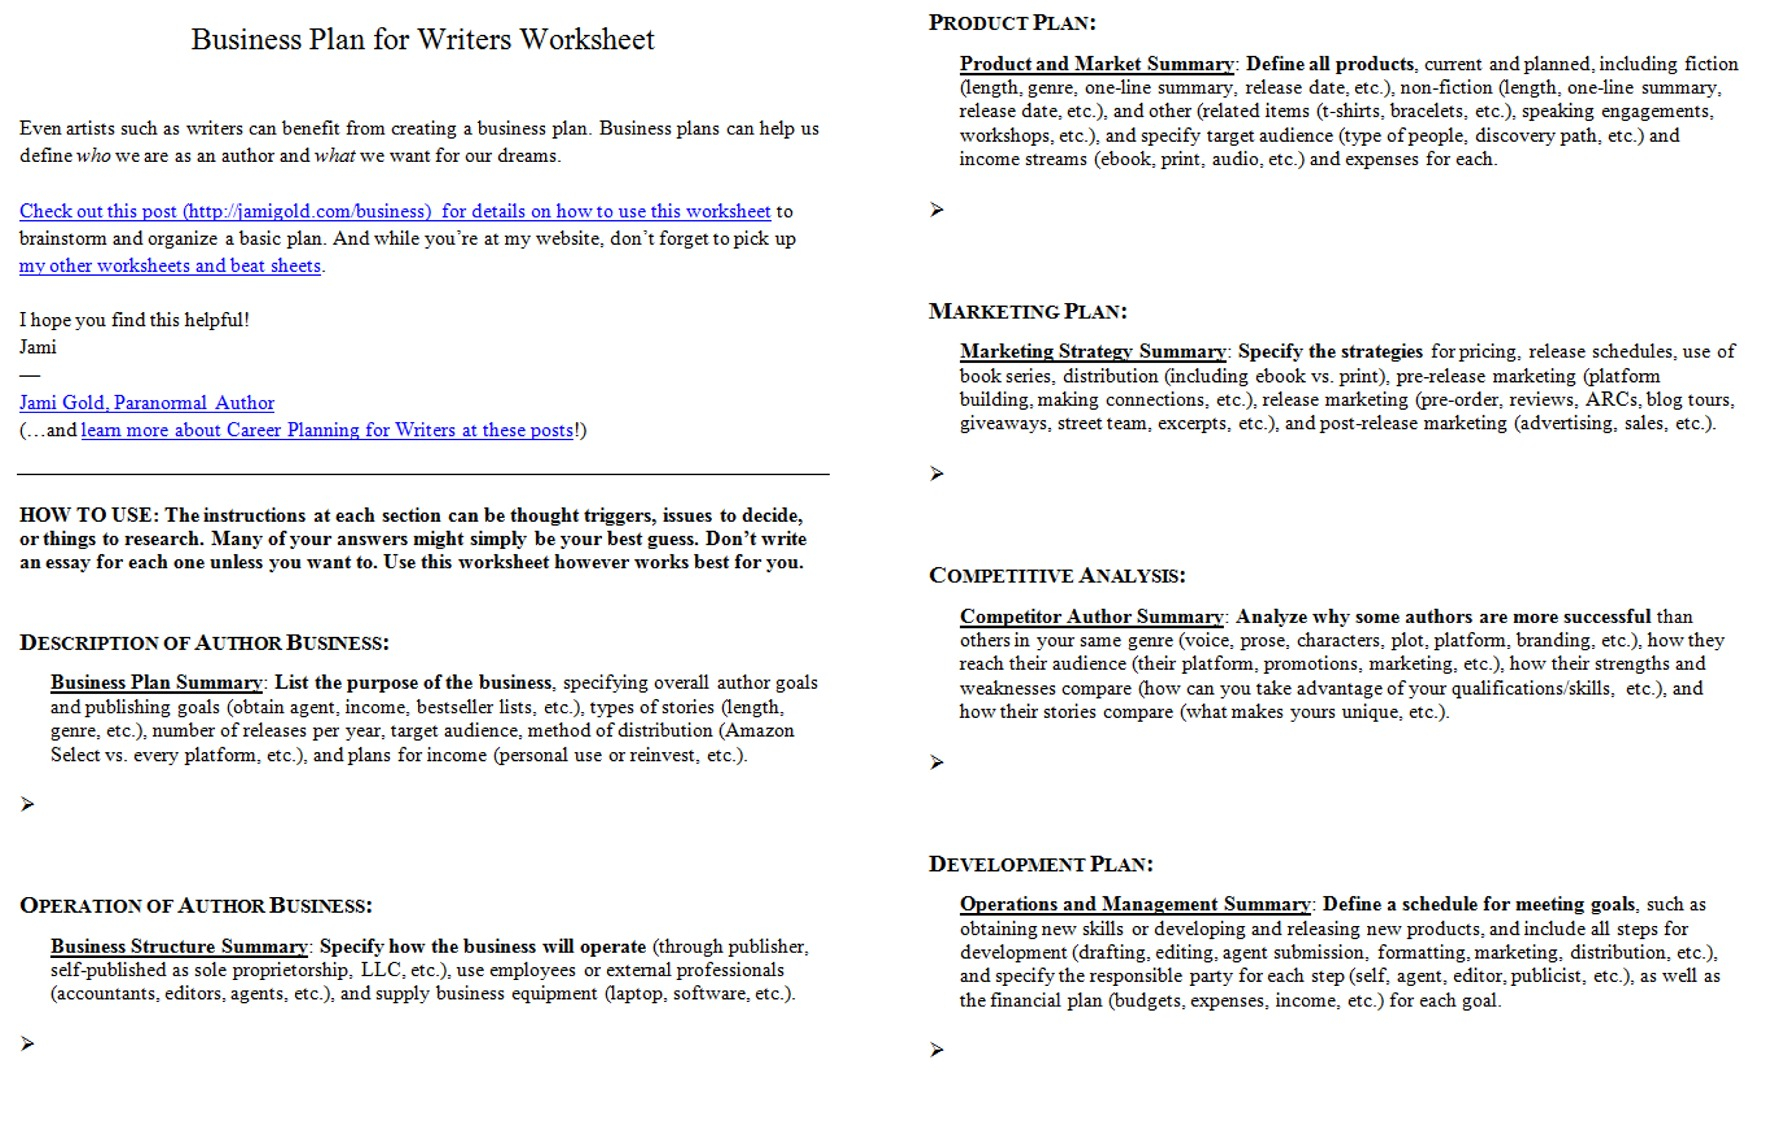 Weirdmailus  Terrific Worksheets For Writers  Jami Gold Paranormal Author With Fascinating Screen Shot Of Both Pages Of The Business Plan For Writers Worksheet With Beautiful Dr Martin Luther King Jr Worksheets Also Addition And Subtraction Worksheets Grade  In Addition Math Worksheets For Prek And Halloween Algebra Worksheets As Well As Color Addition Worksheets Additionally Nd Worksheets From Jamigoldcom With Weirdmailus  Fascinating Worksheets For Writers  Jami Gold Paranormal Author With Beautiful Screen Shot Of Both Pages Of The Business Plan For Writers Worksheet And Terrific Dr Martin Luther King Jr Worksheets Also Addition And Subtraction Worksheets Grade  In Addition Math Worksheets For Prek From Jamigoldcom